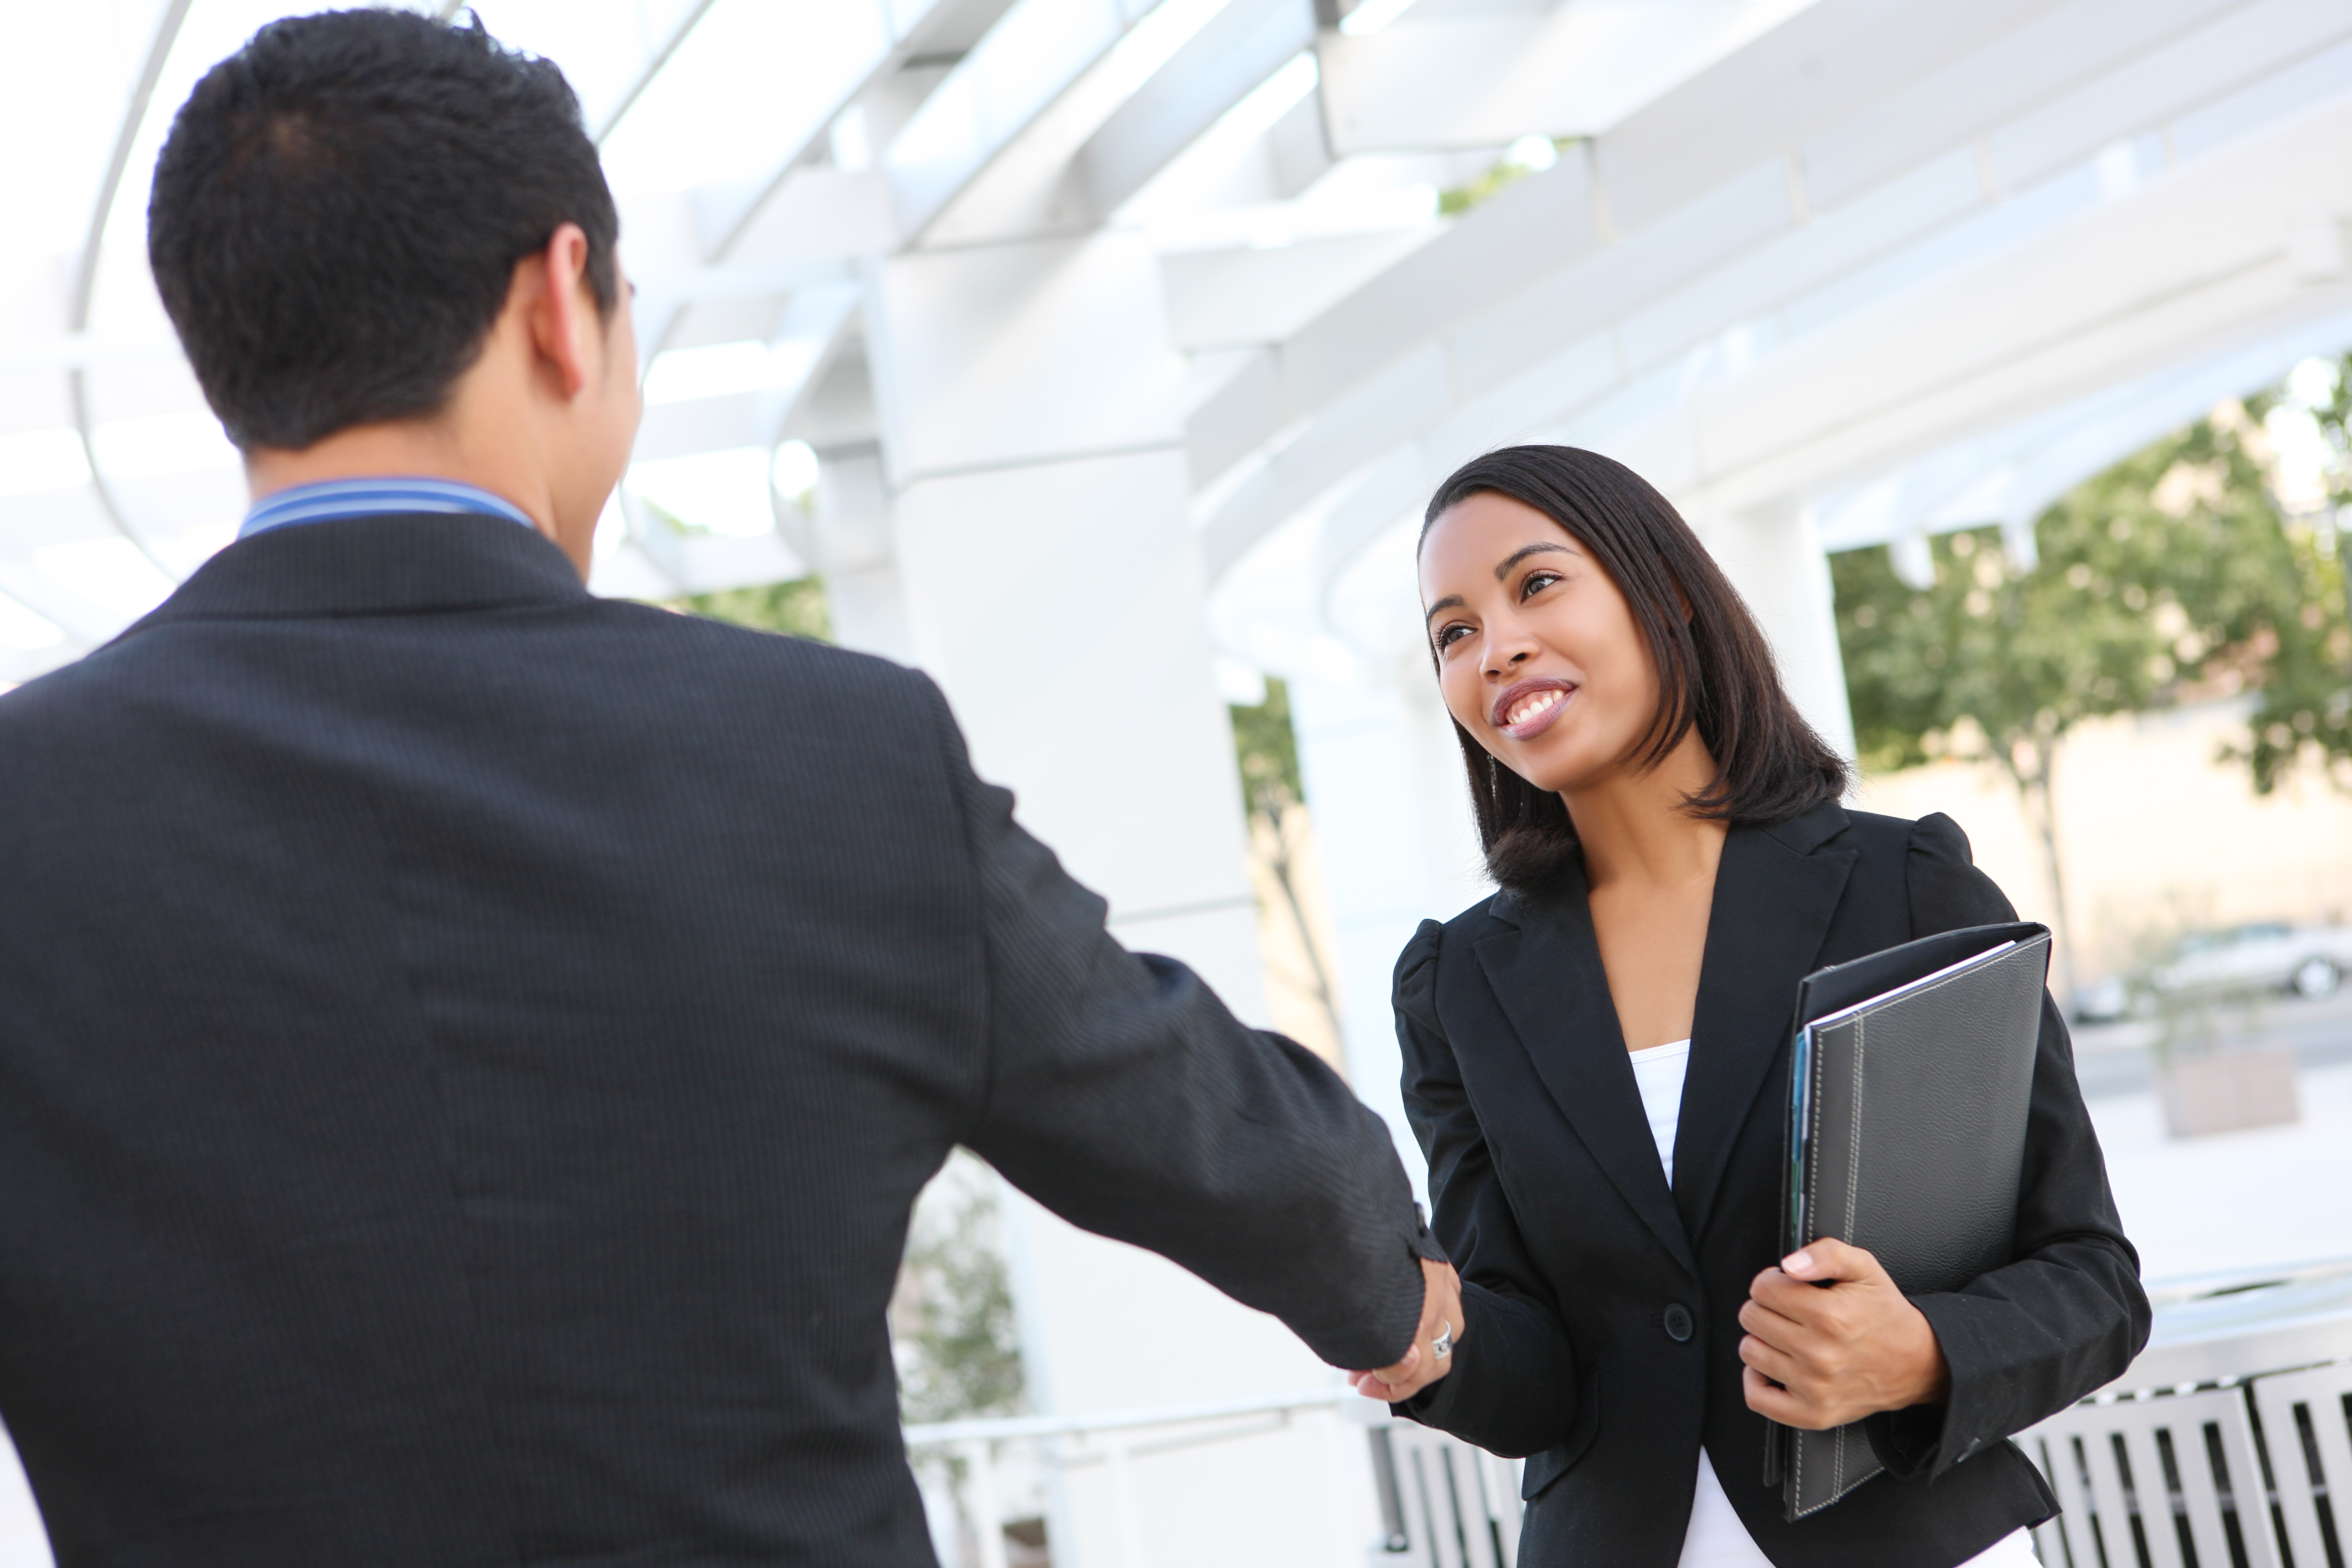 How To Hire Humble People